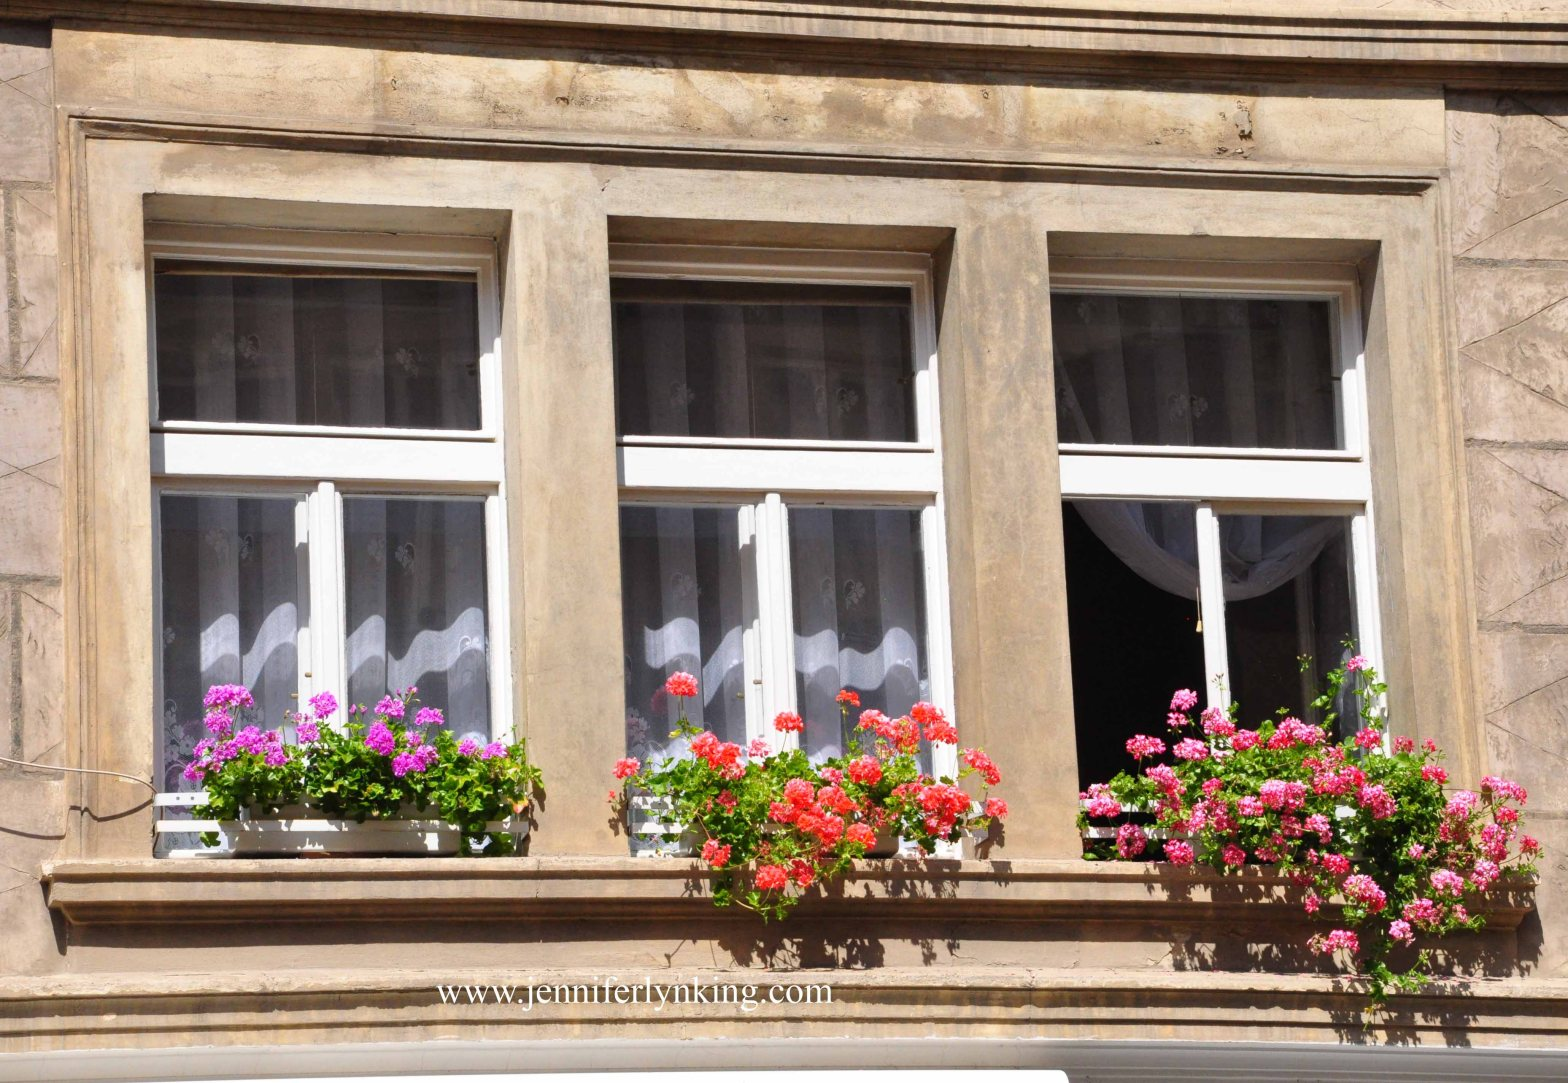 Window Boxes in Prague